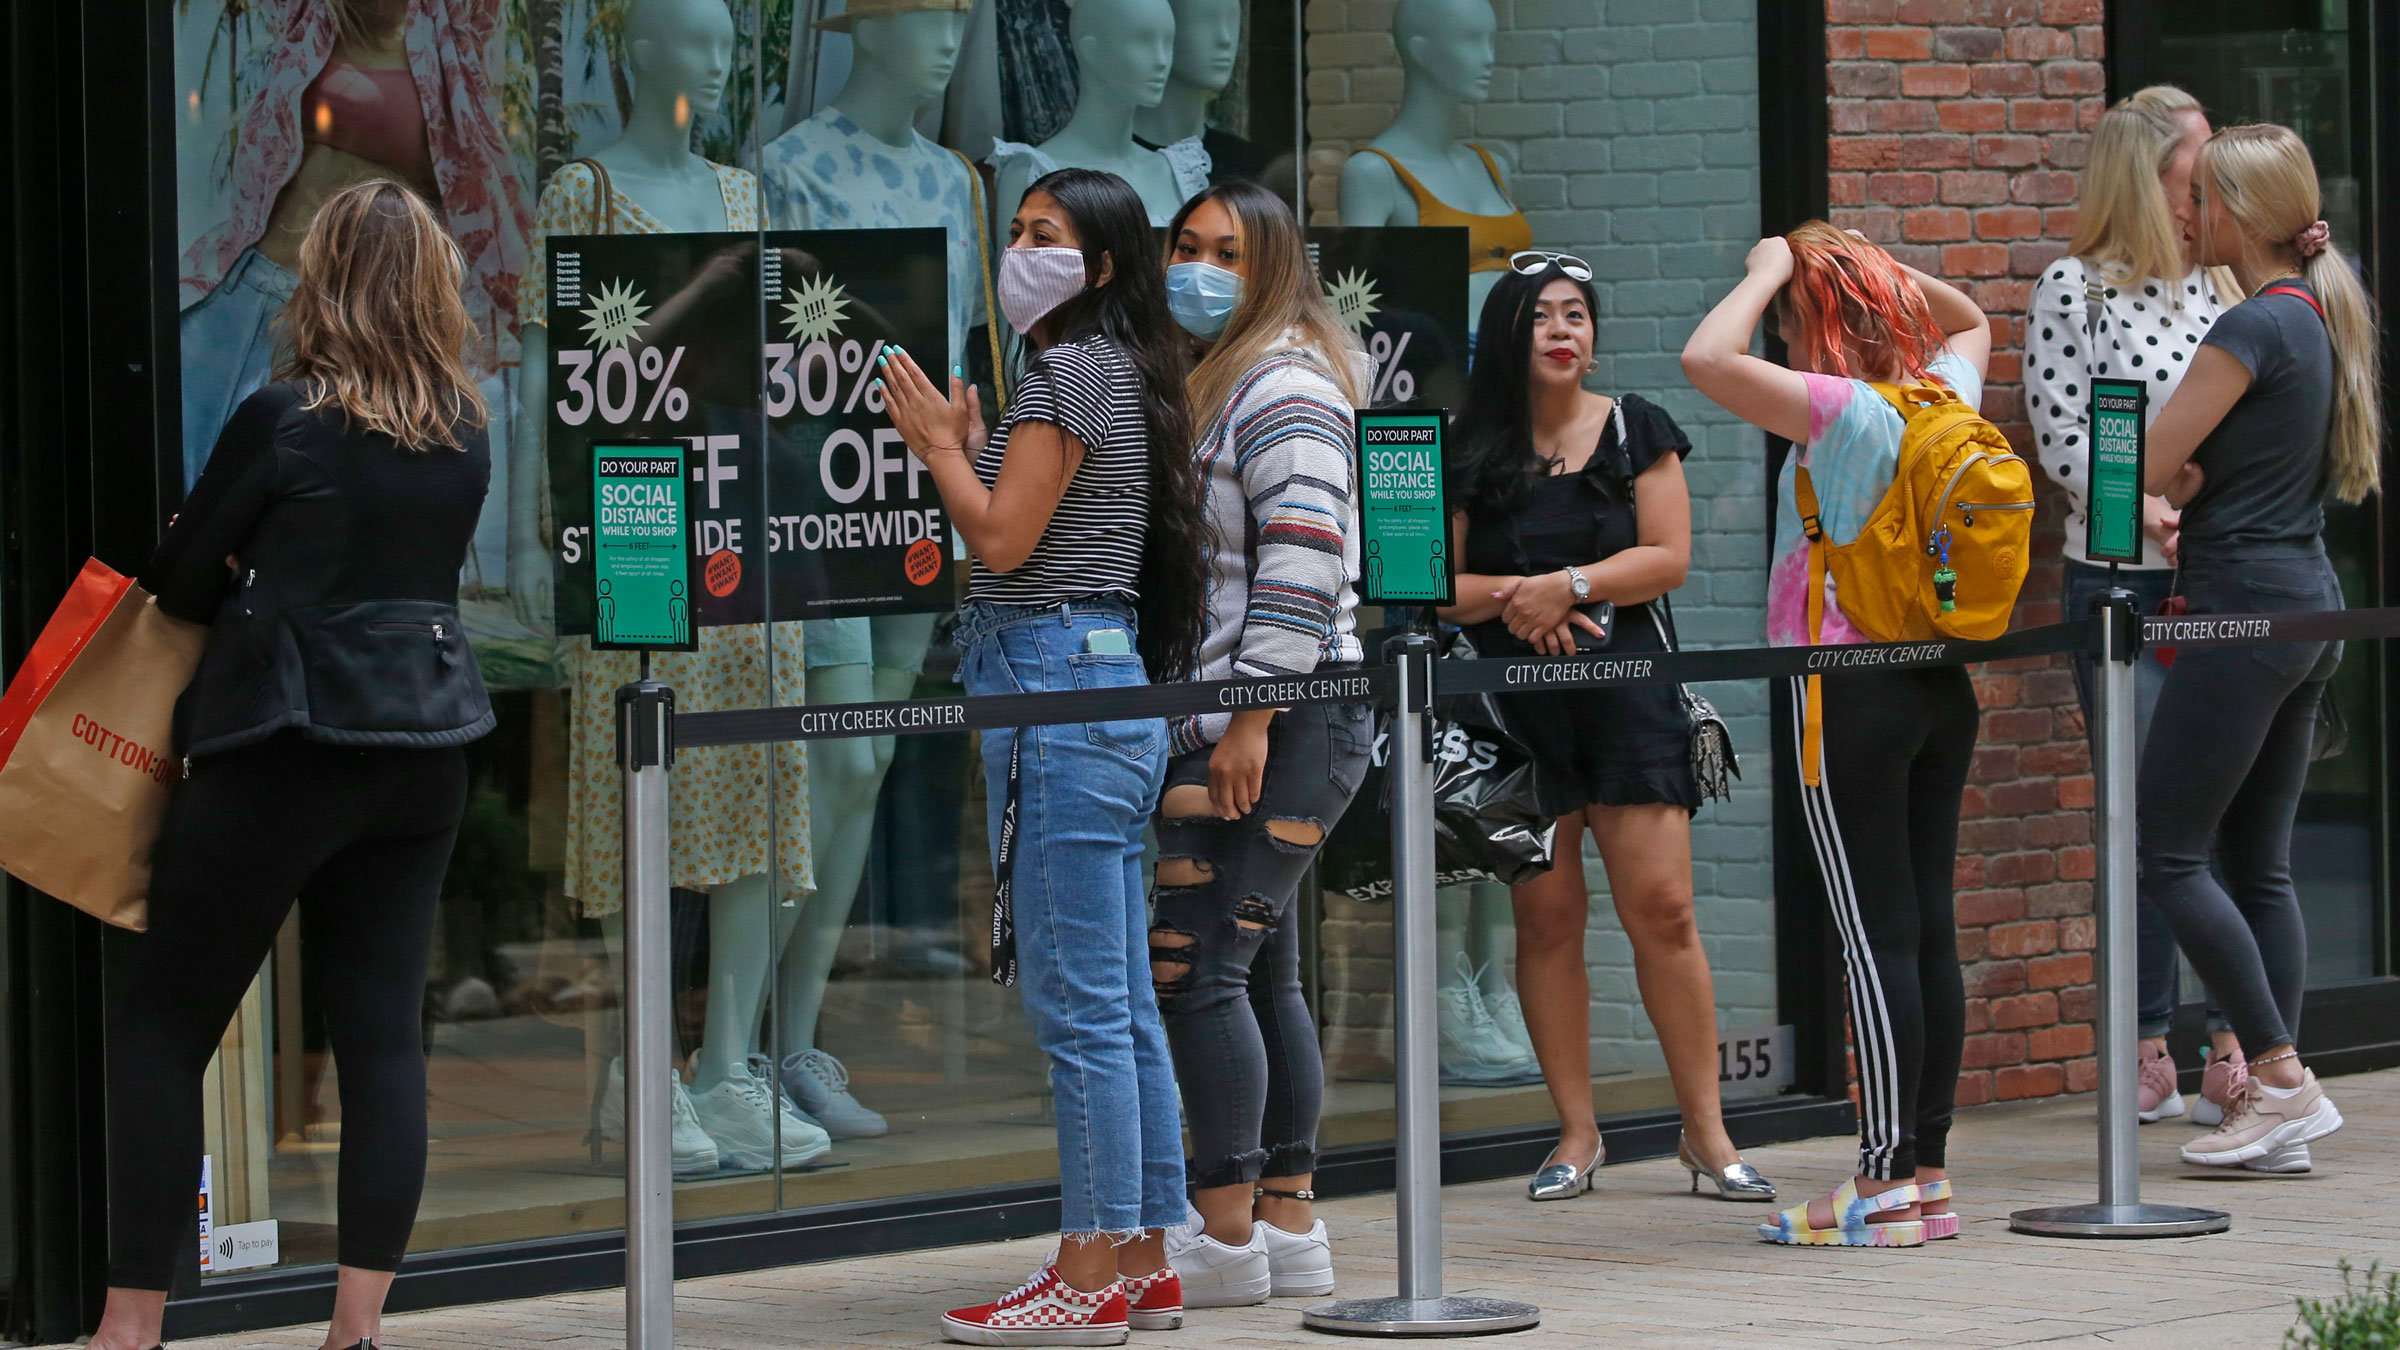 People wait in line in front of a store in Salt Lake City on May 22.